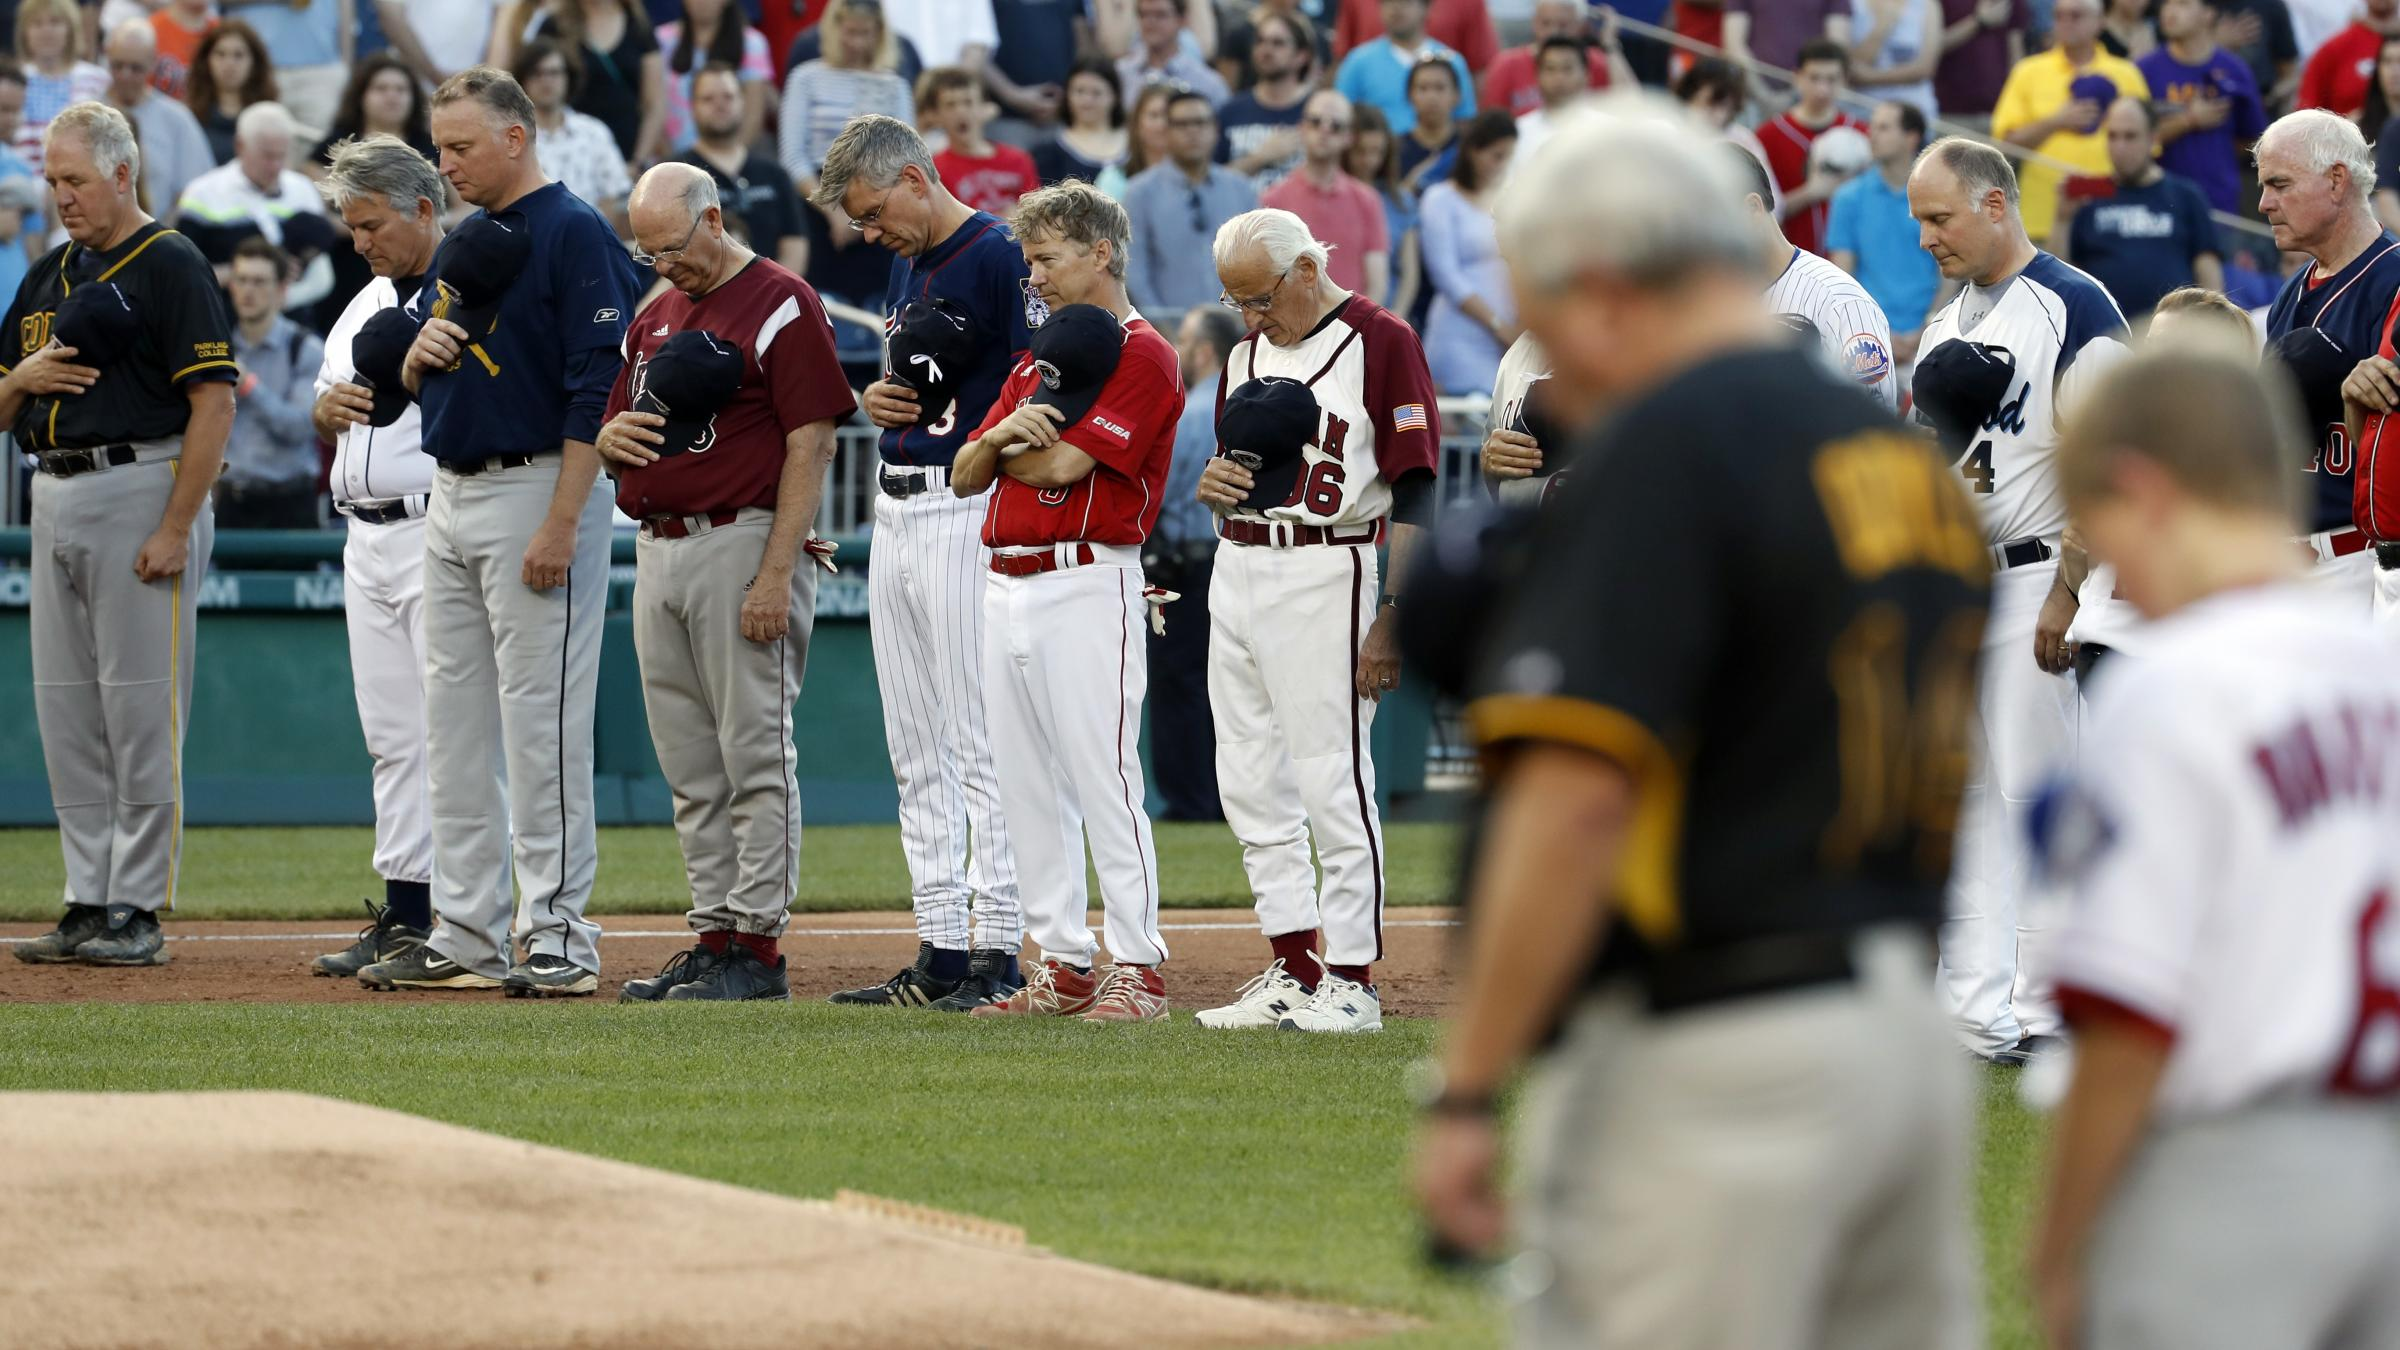 Security tightened ahead of Congressional Baseball Game after shooting